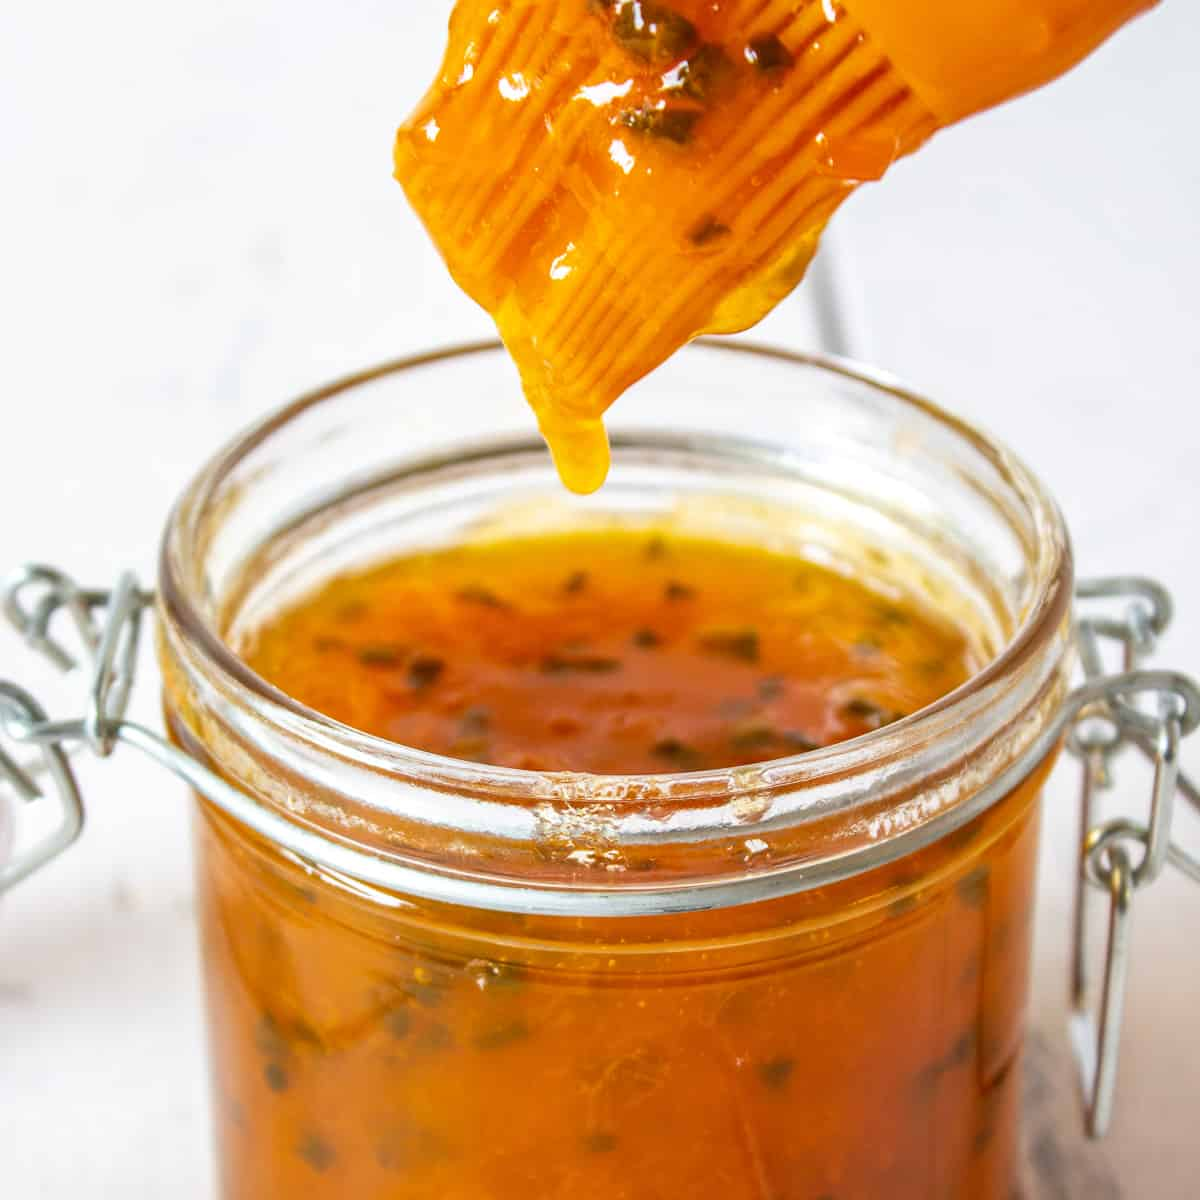 A basting brush dripping with an apricot sauce over a jar filled with the sauce.